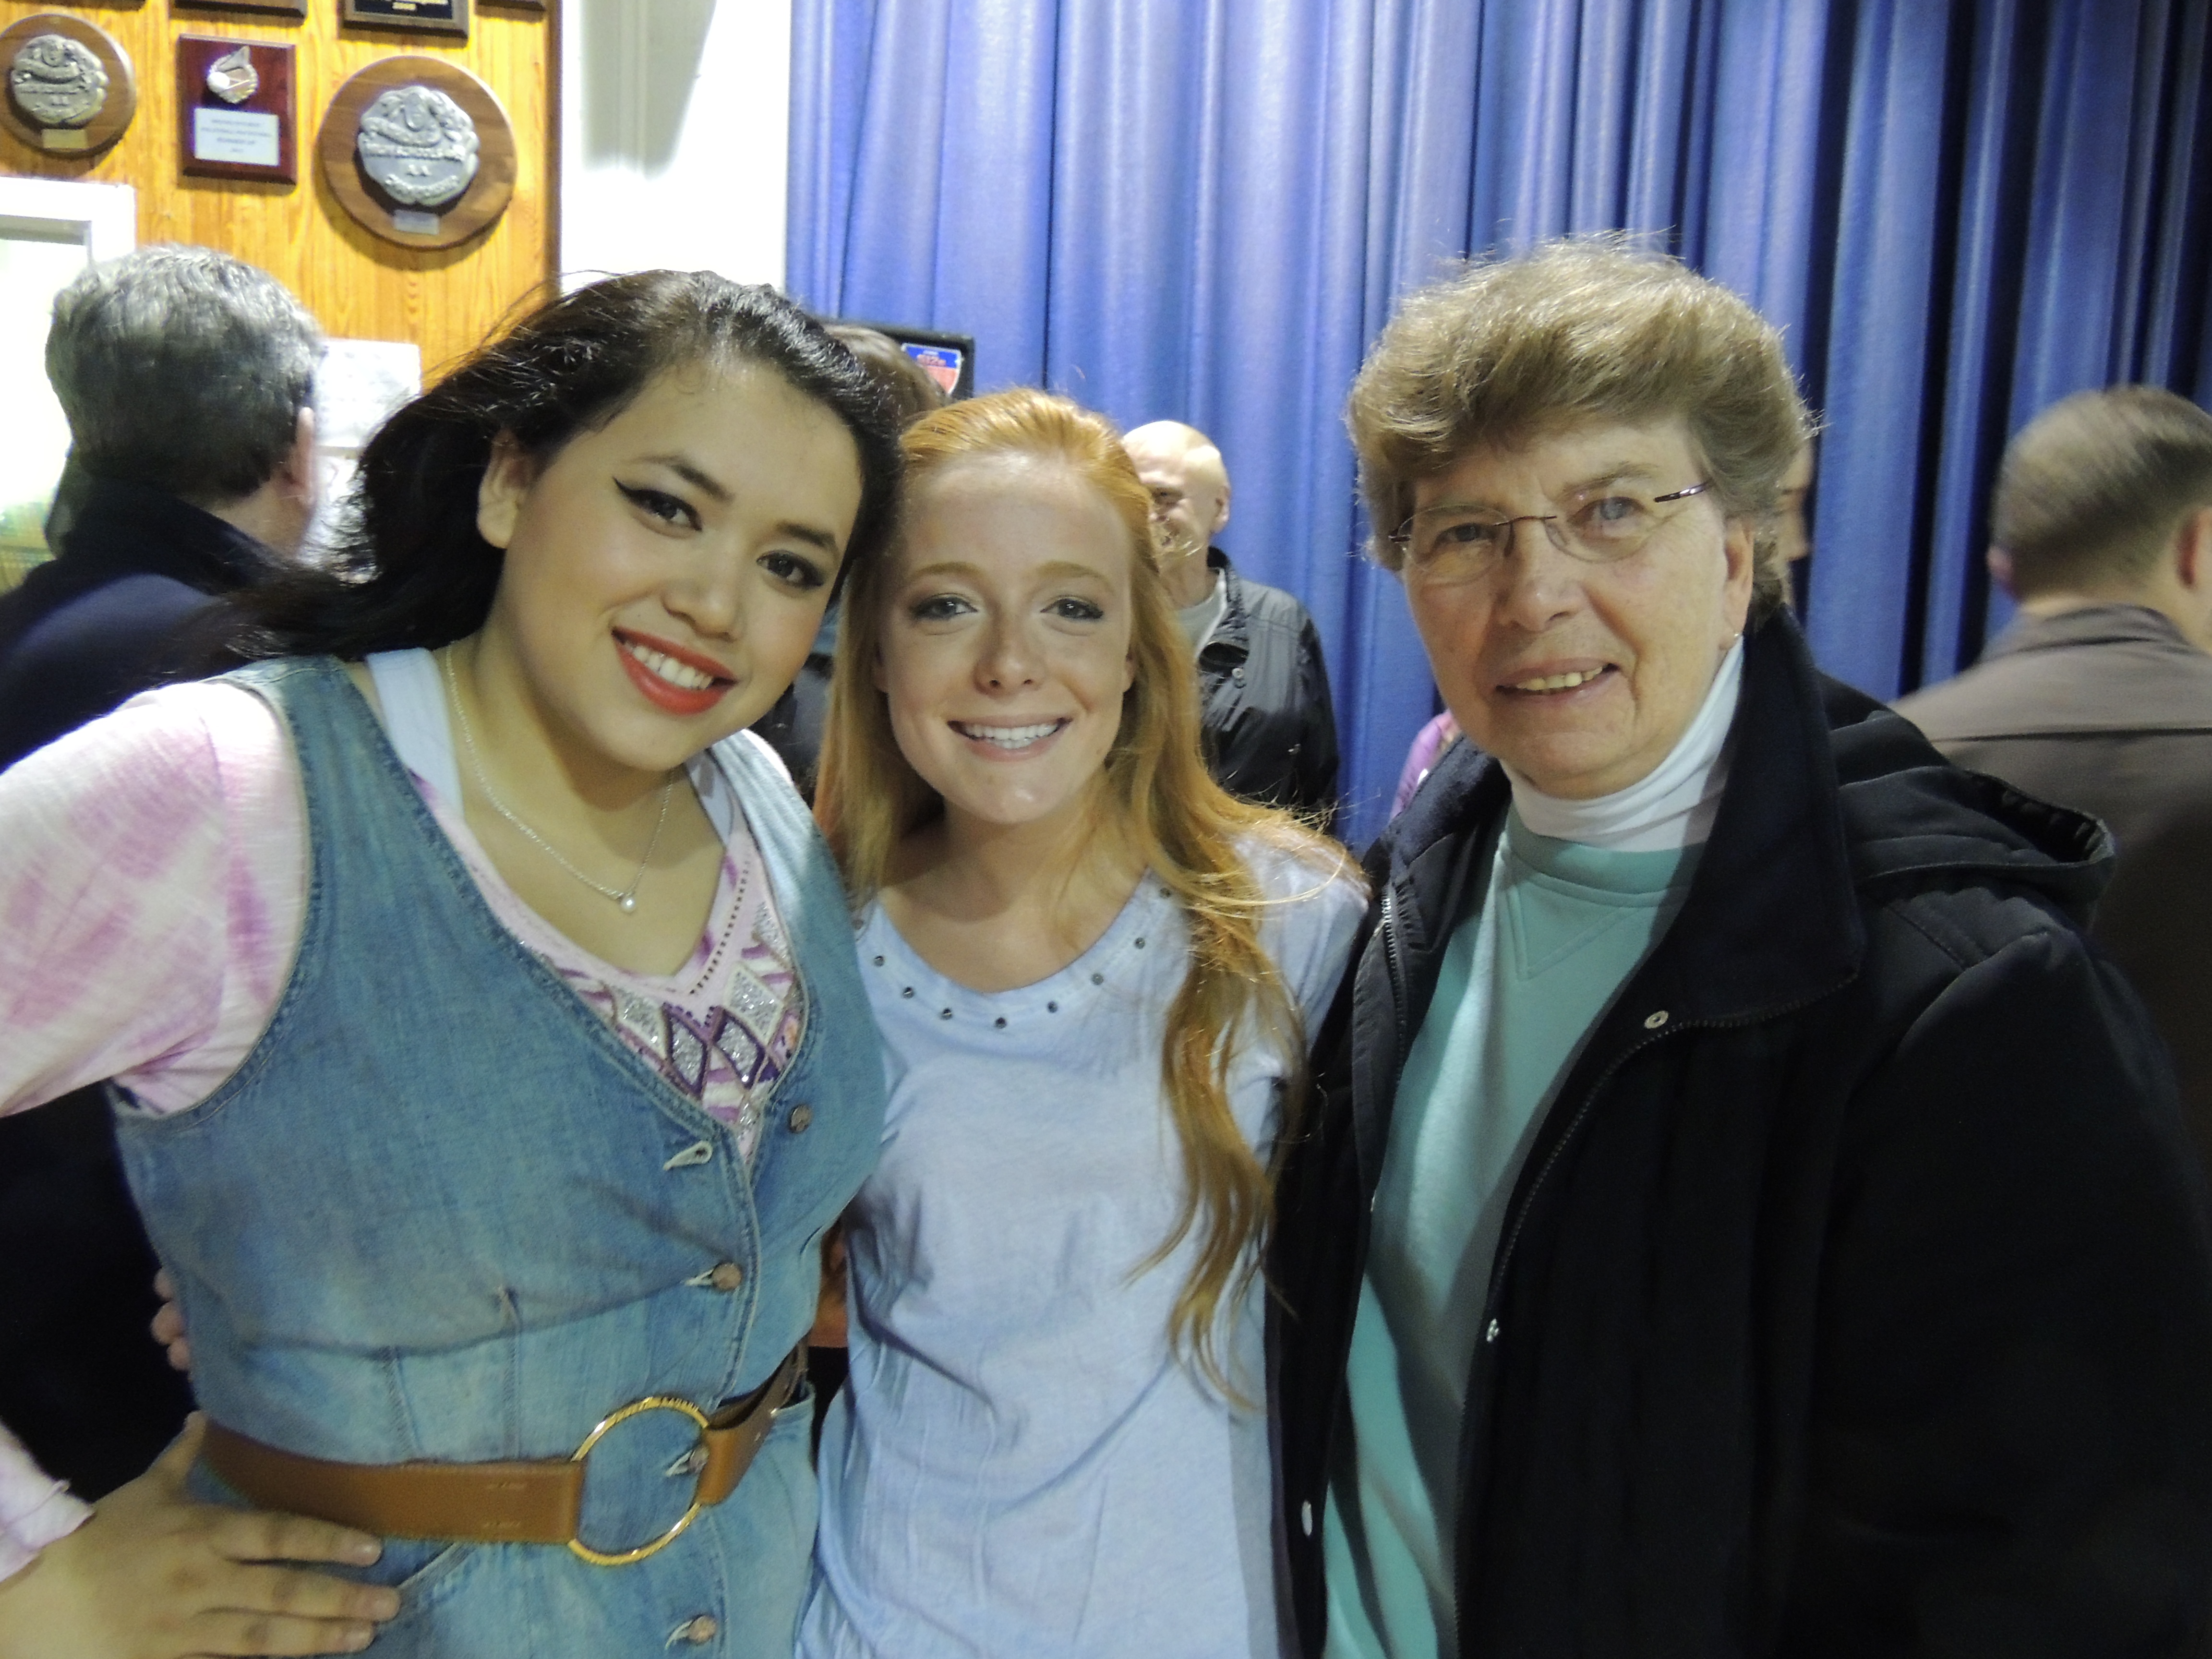 Seniors Nicolette Shin (Paulette) and Accursia Gallagher (Brooke) spend a moment with Sister Dolores Crepeau, C.S.J, principal, after the Saturday night performance.